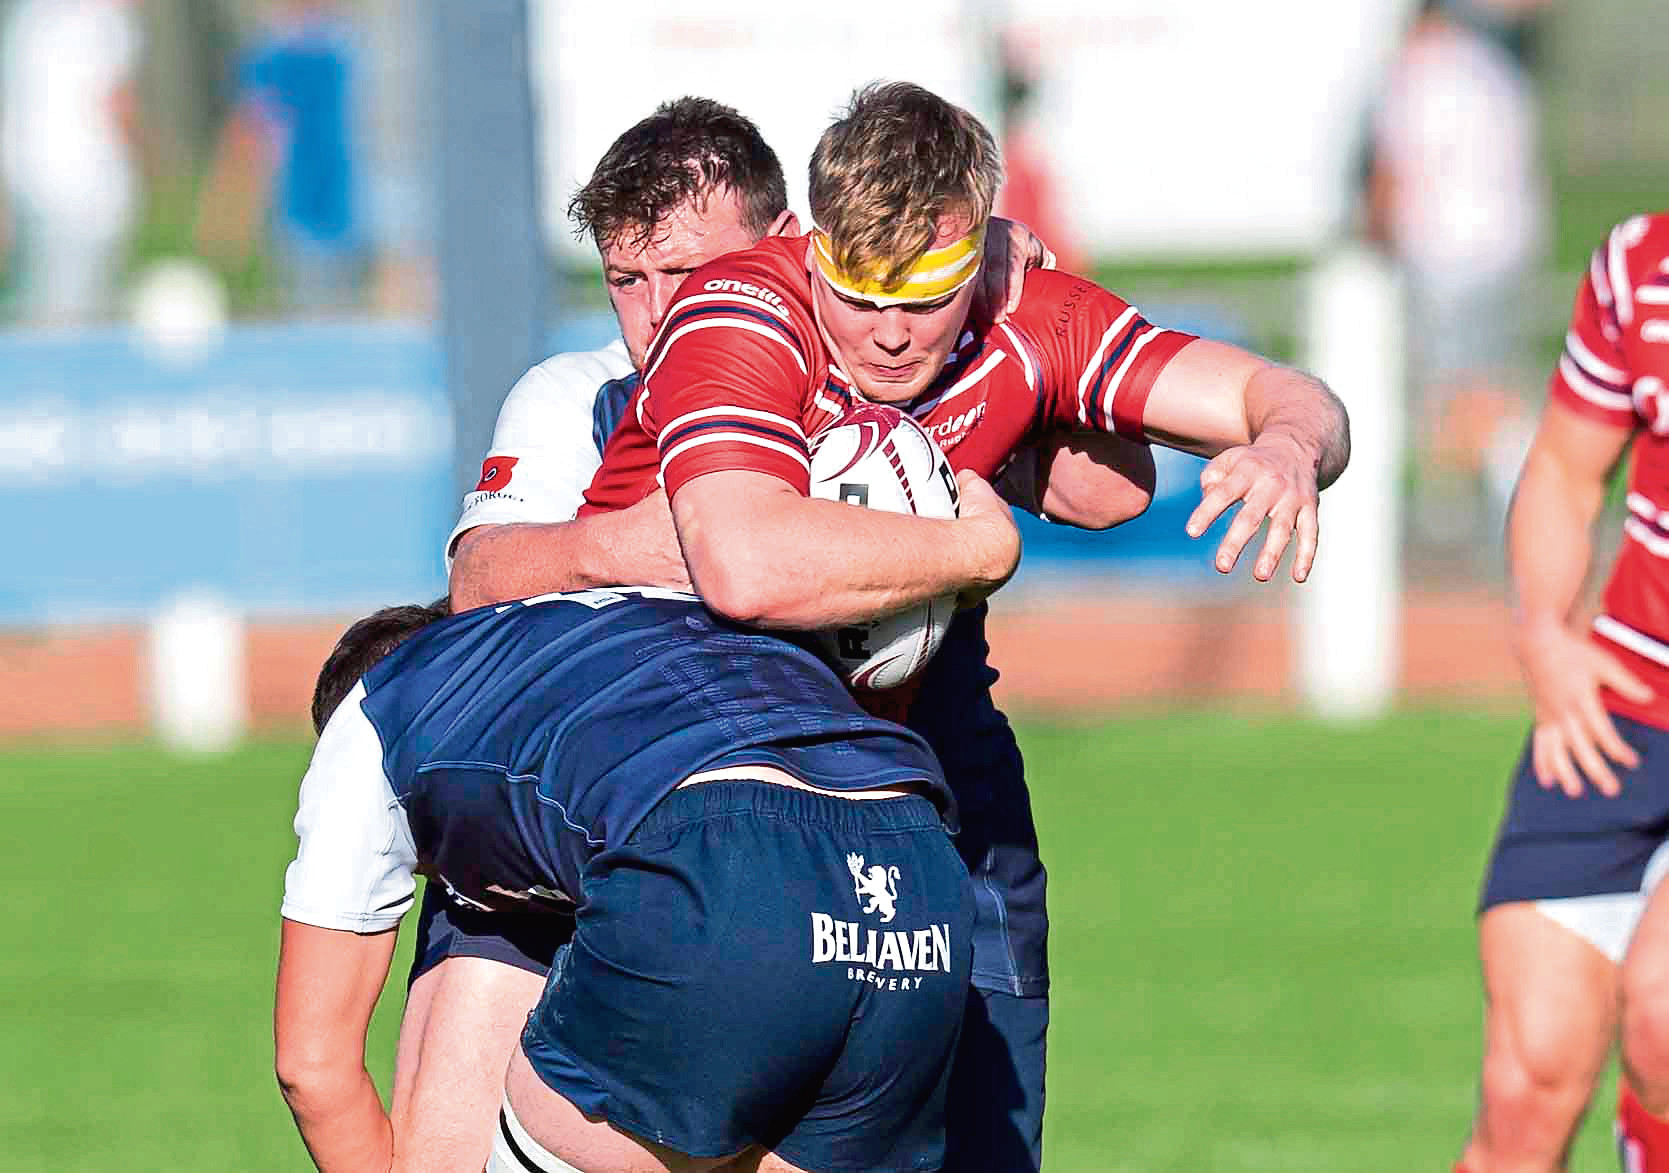 berdeen's Robin Cessford (L) in action with Selkirk's Derry Alexander during the Tennent's Premiership match between Selkirk and Aberdeen Grammar